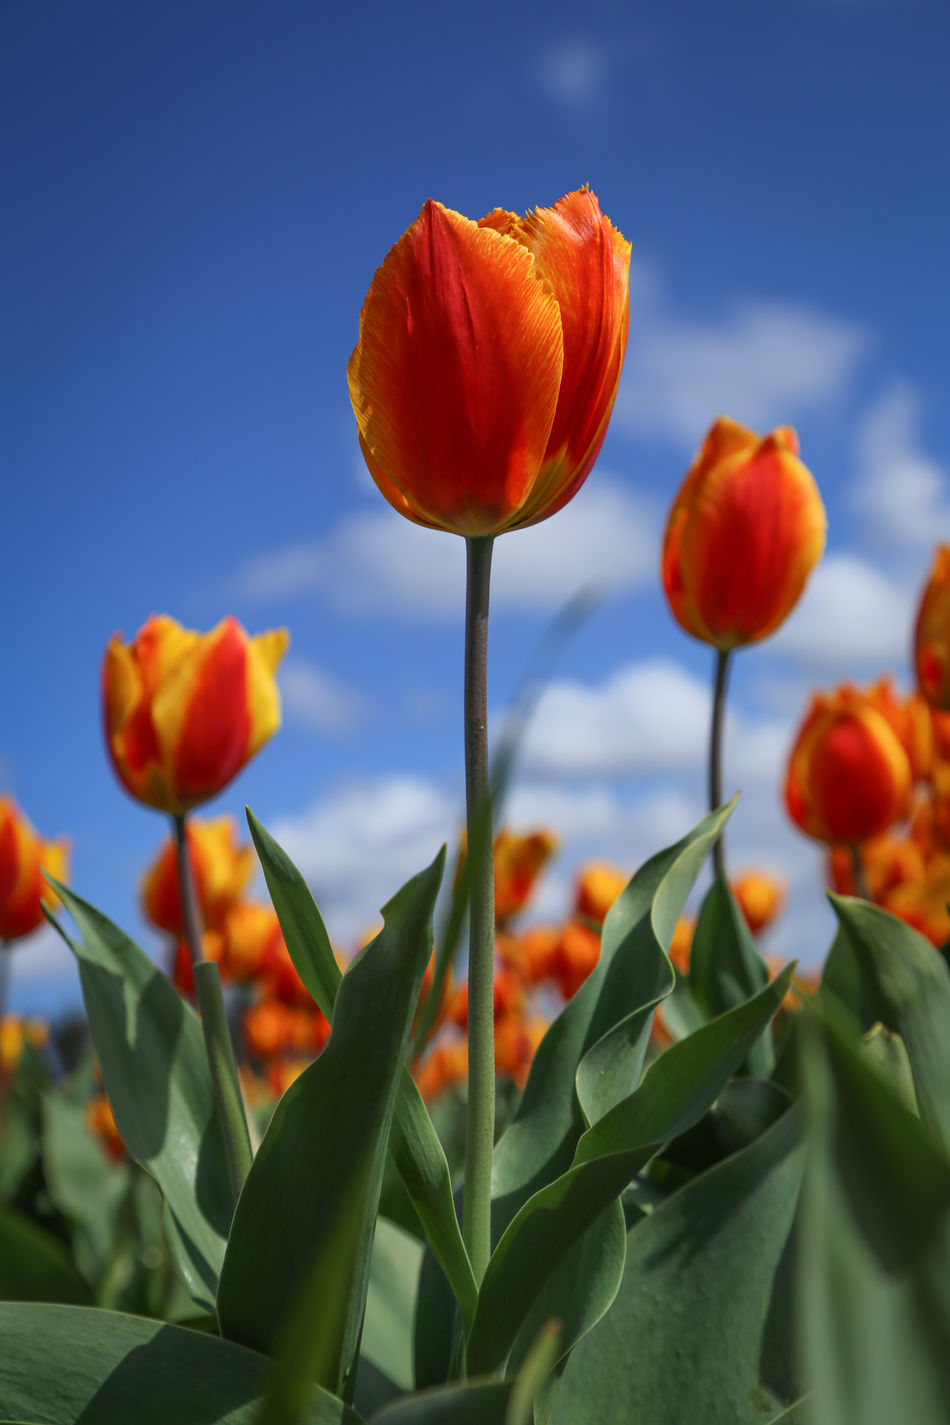 Flower Growth Plant Nature Beauty In Nature No People Close-up Outdoors Sky Flower Head Day Red Orange Yellow Tullips Typical Dutch Blue Sky Tulips🌷 Rows Of Tulips Hollands Landschap Holland Springtime Landscape Tourist In My Own Country Happiness